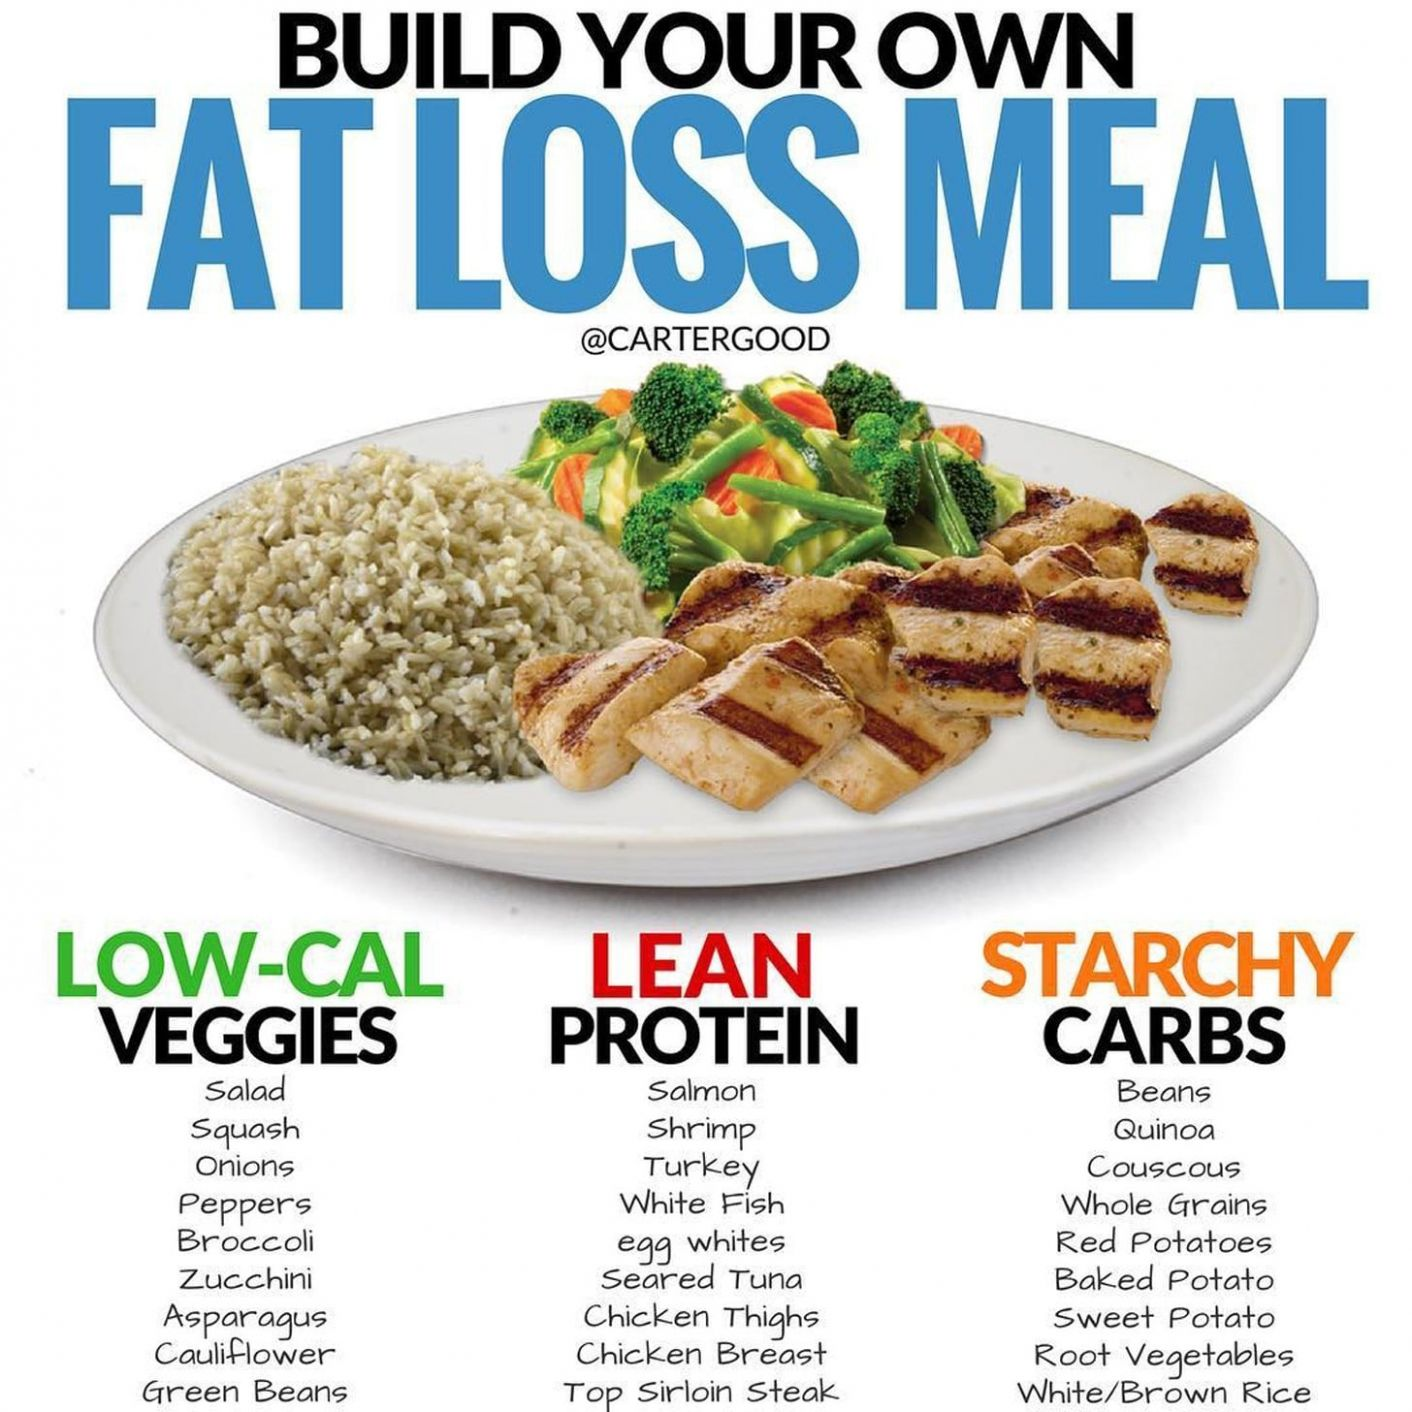 Meal Ideas For Weight Loss | POPSUGAR Fitness - Weight Loss Tuna Recipes